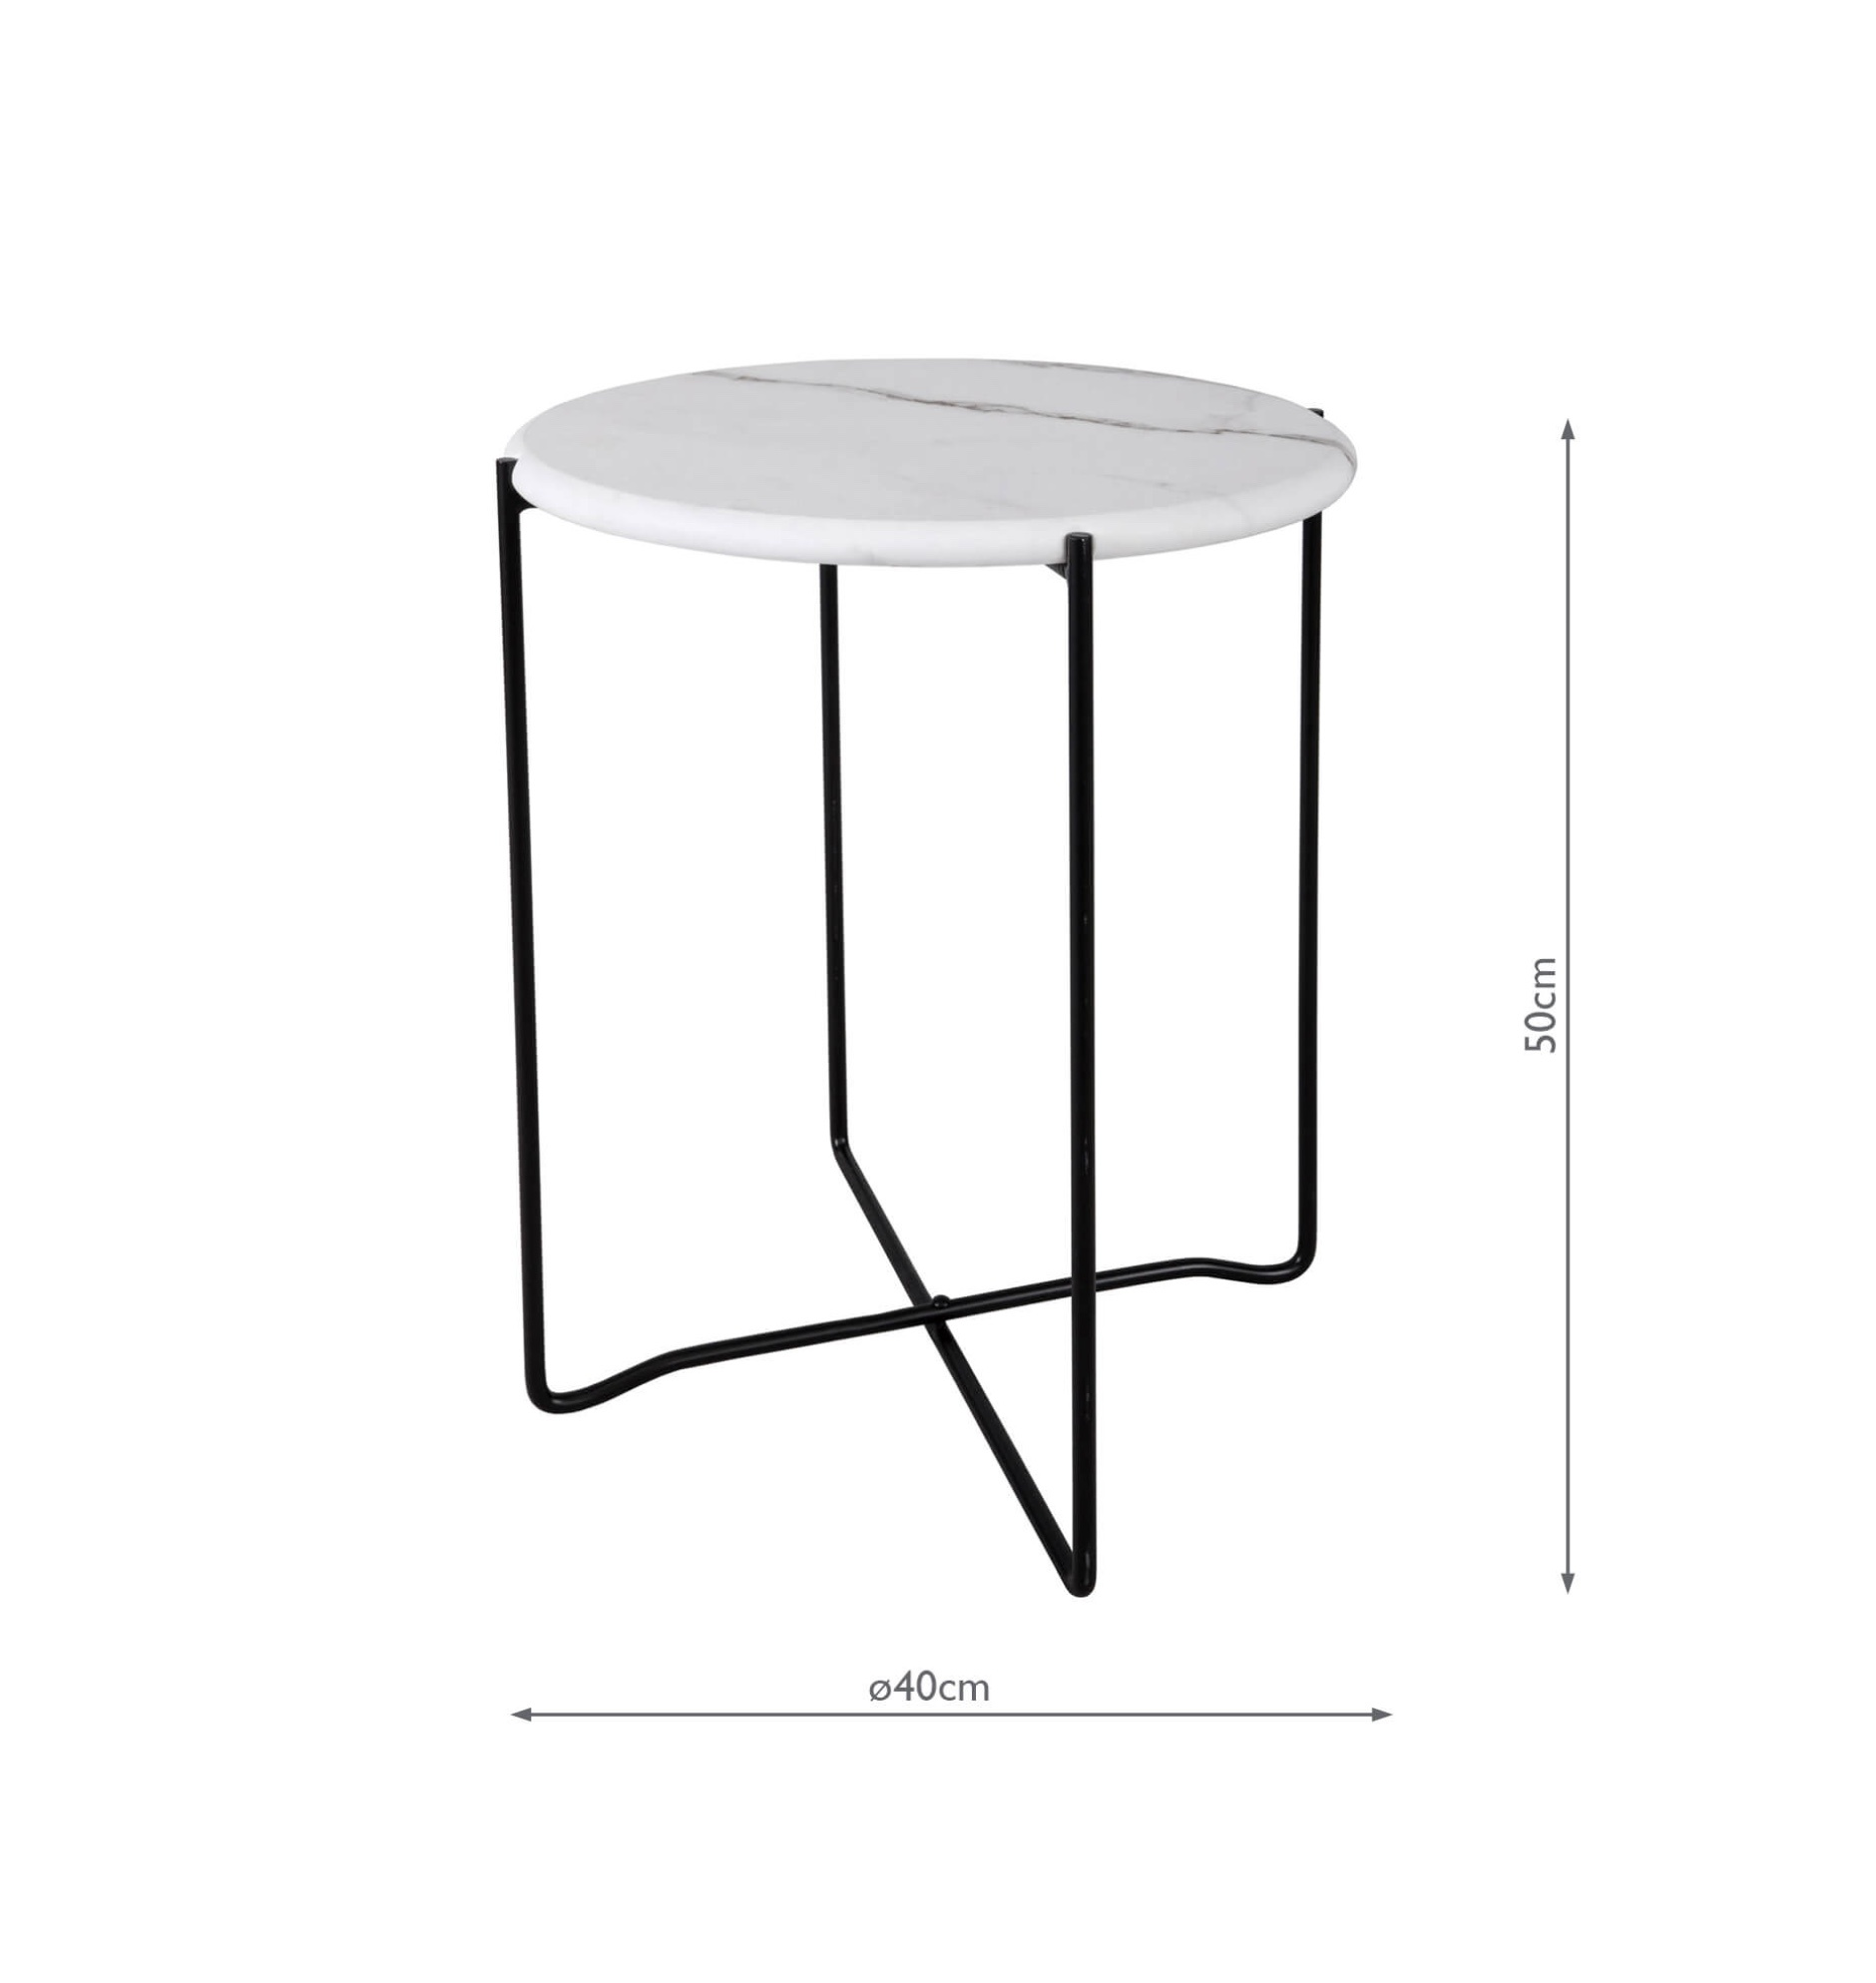 Athena Round Rolled Edge Side Table White Marble Lightbox